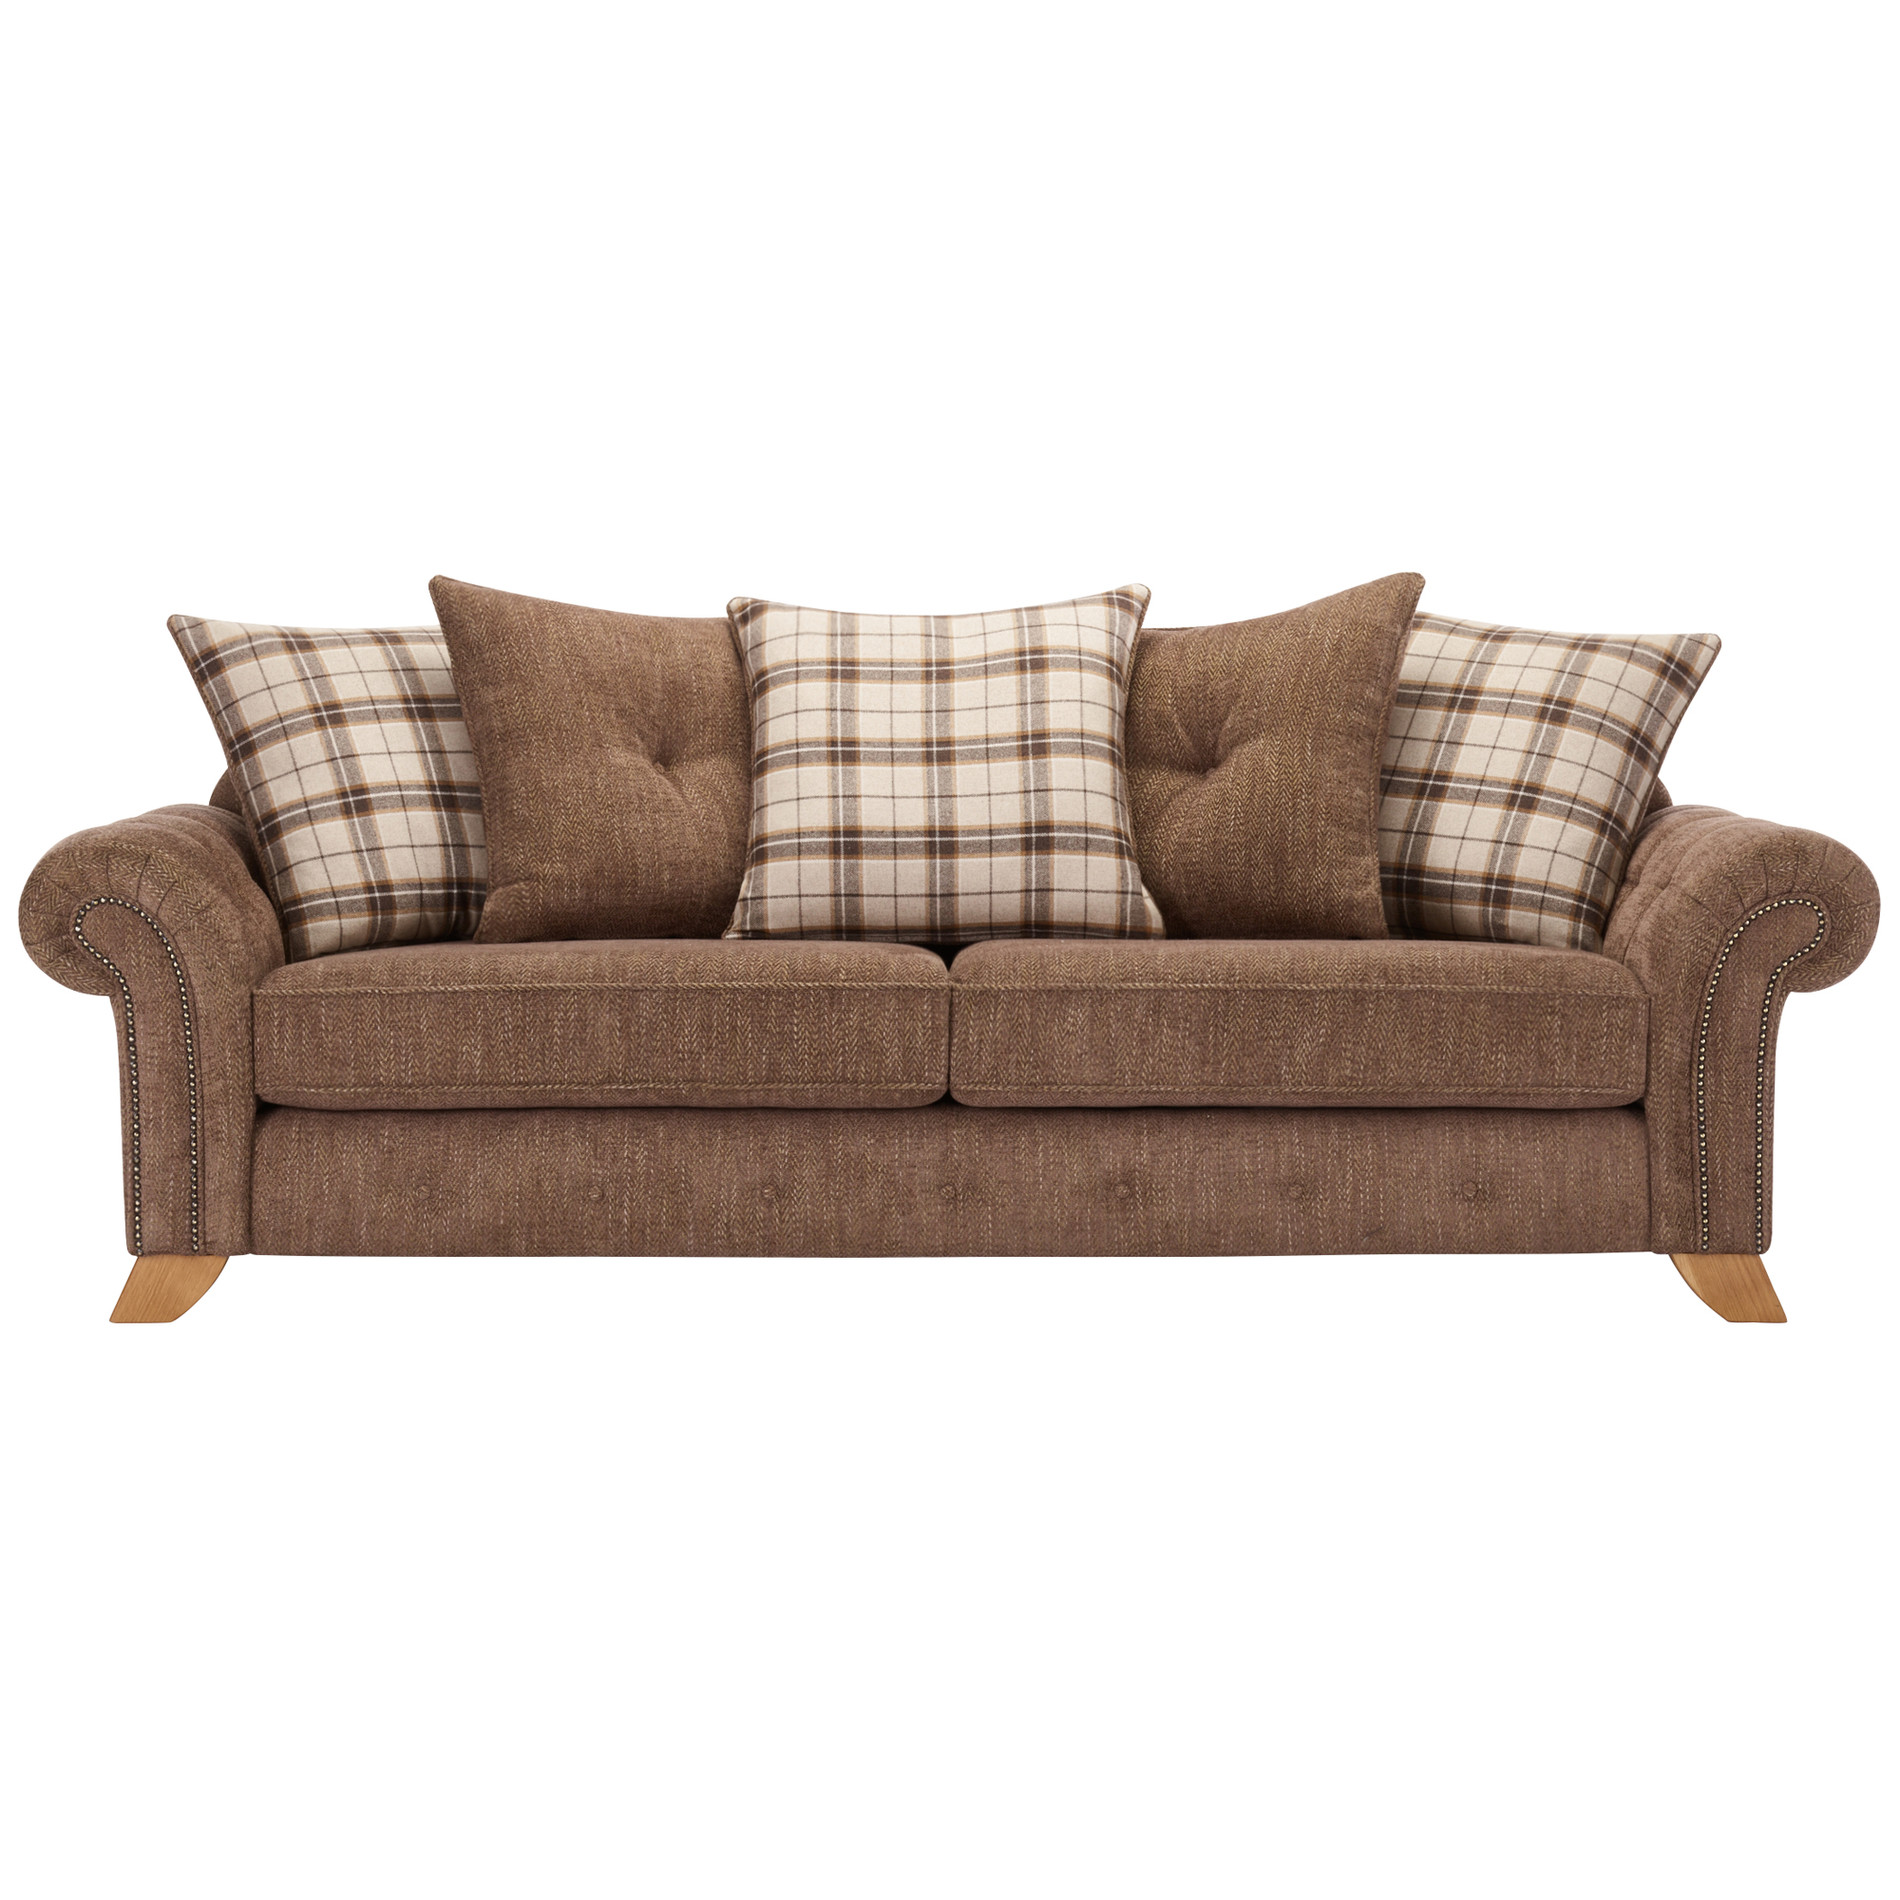 Montana 4 Seater Sofa with Pillow Back in Brown Fabric